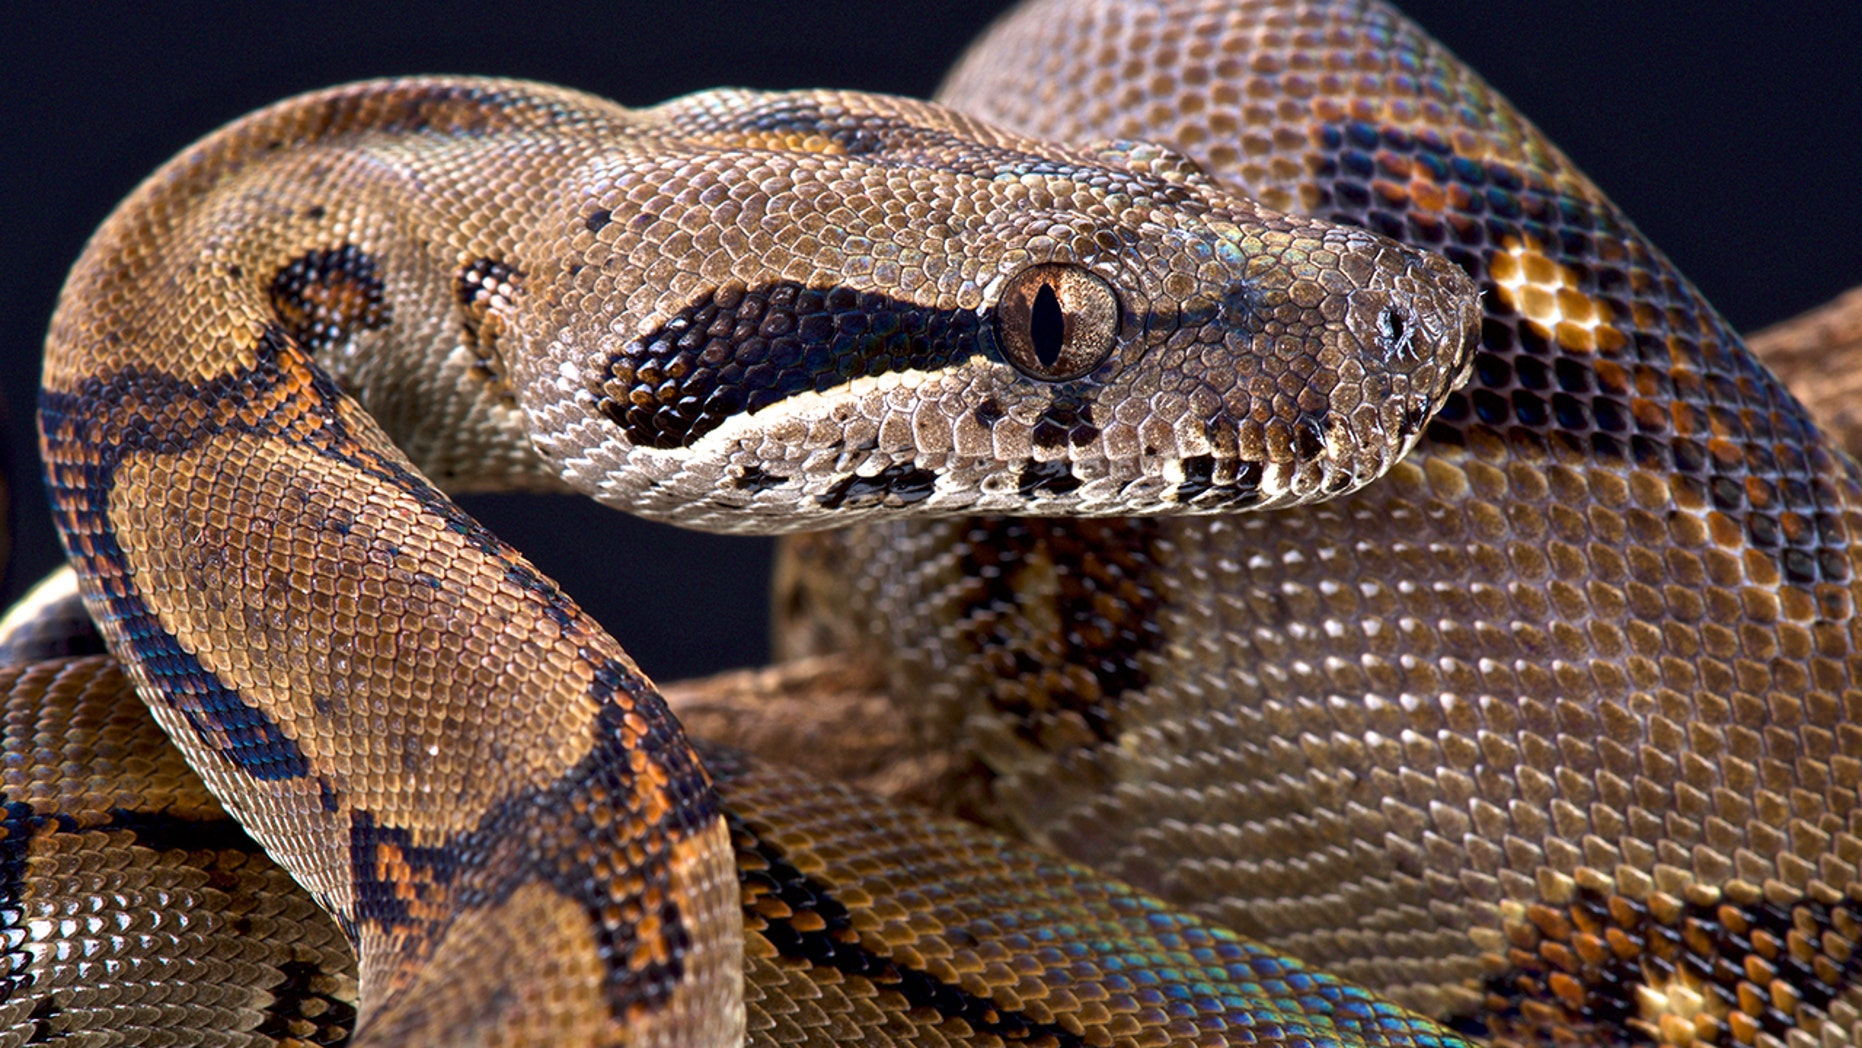 Hotel staff at a N.C. Rhodeway Inn were in for a terrifying surprise when they found a snake in the bed.